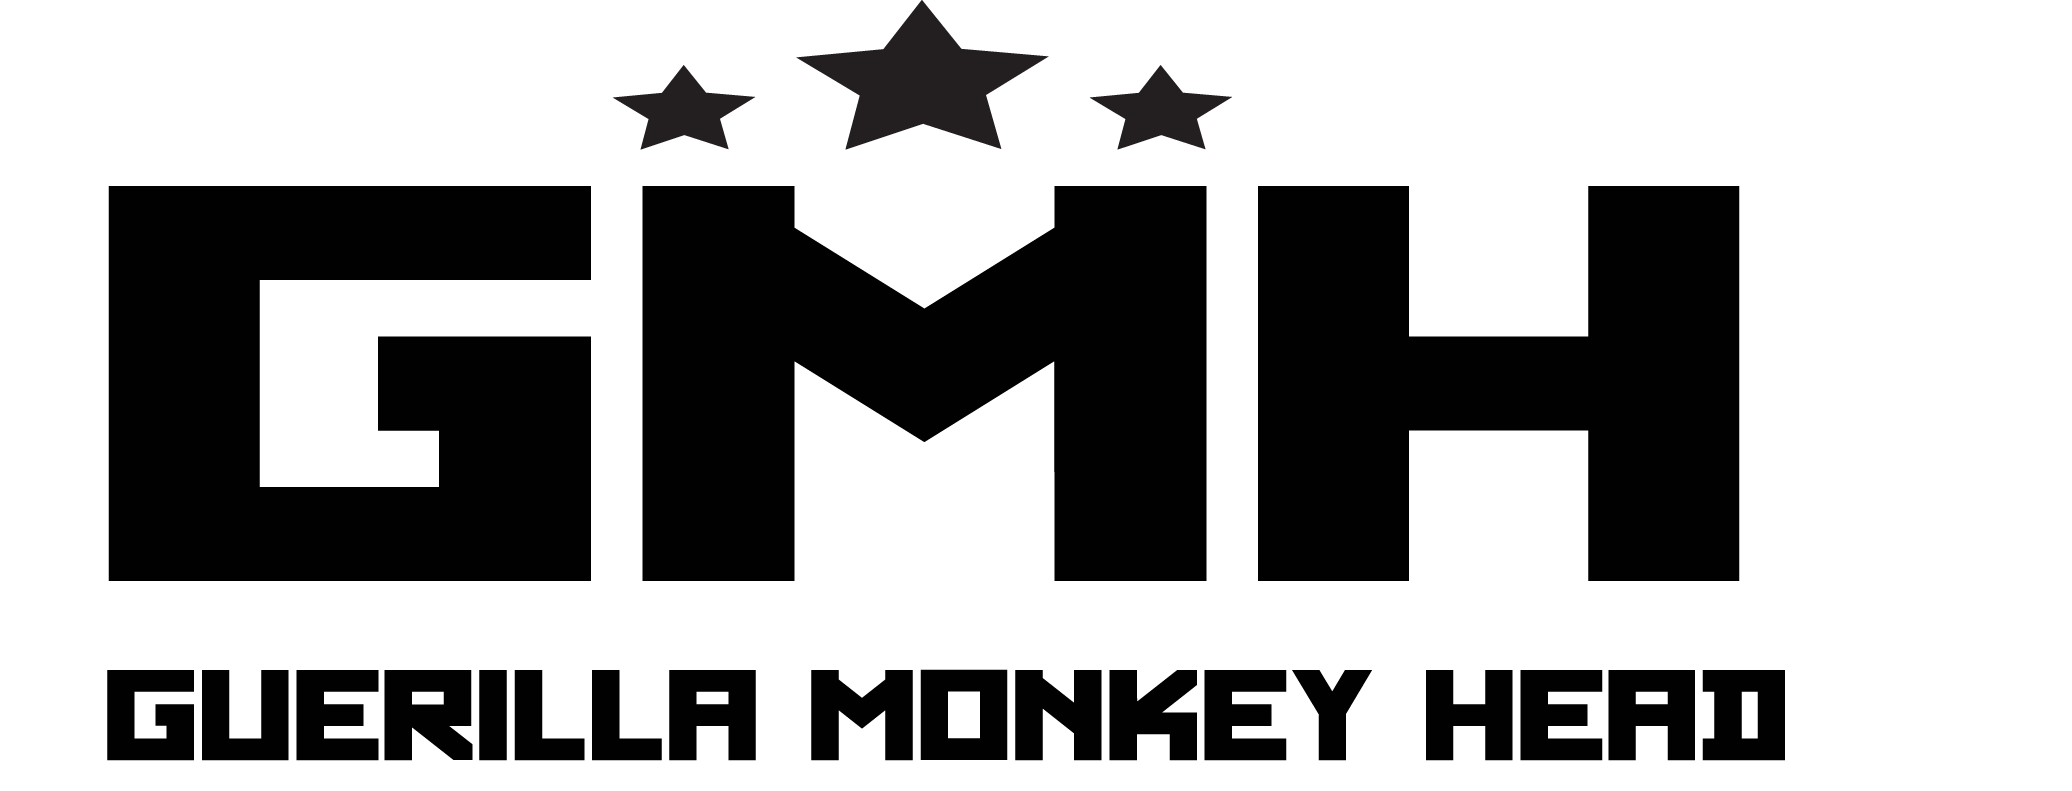 Guerilla Monkey Head